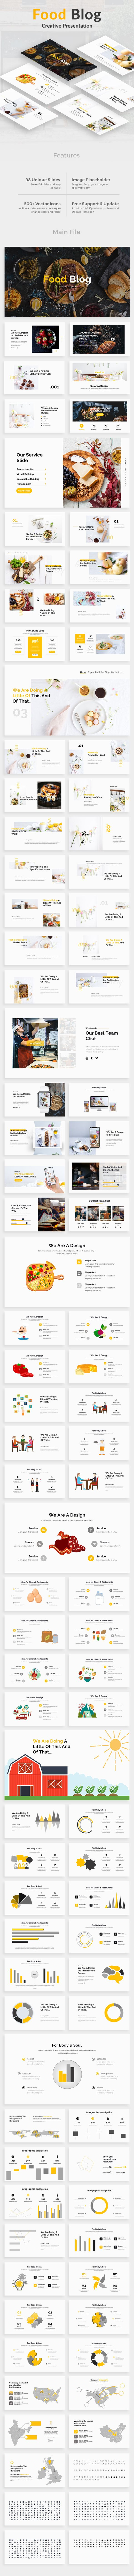 Food Blog Google Slide Template #social media #pptx • Download ➝ https://graphicriver.net/item/food-blog-google-slide-template/21274339?ref=pxcr